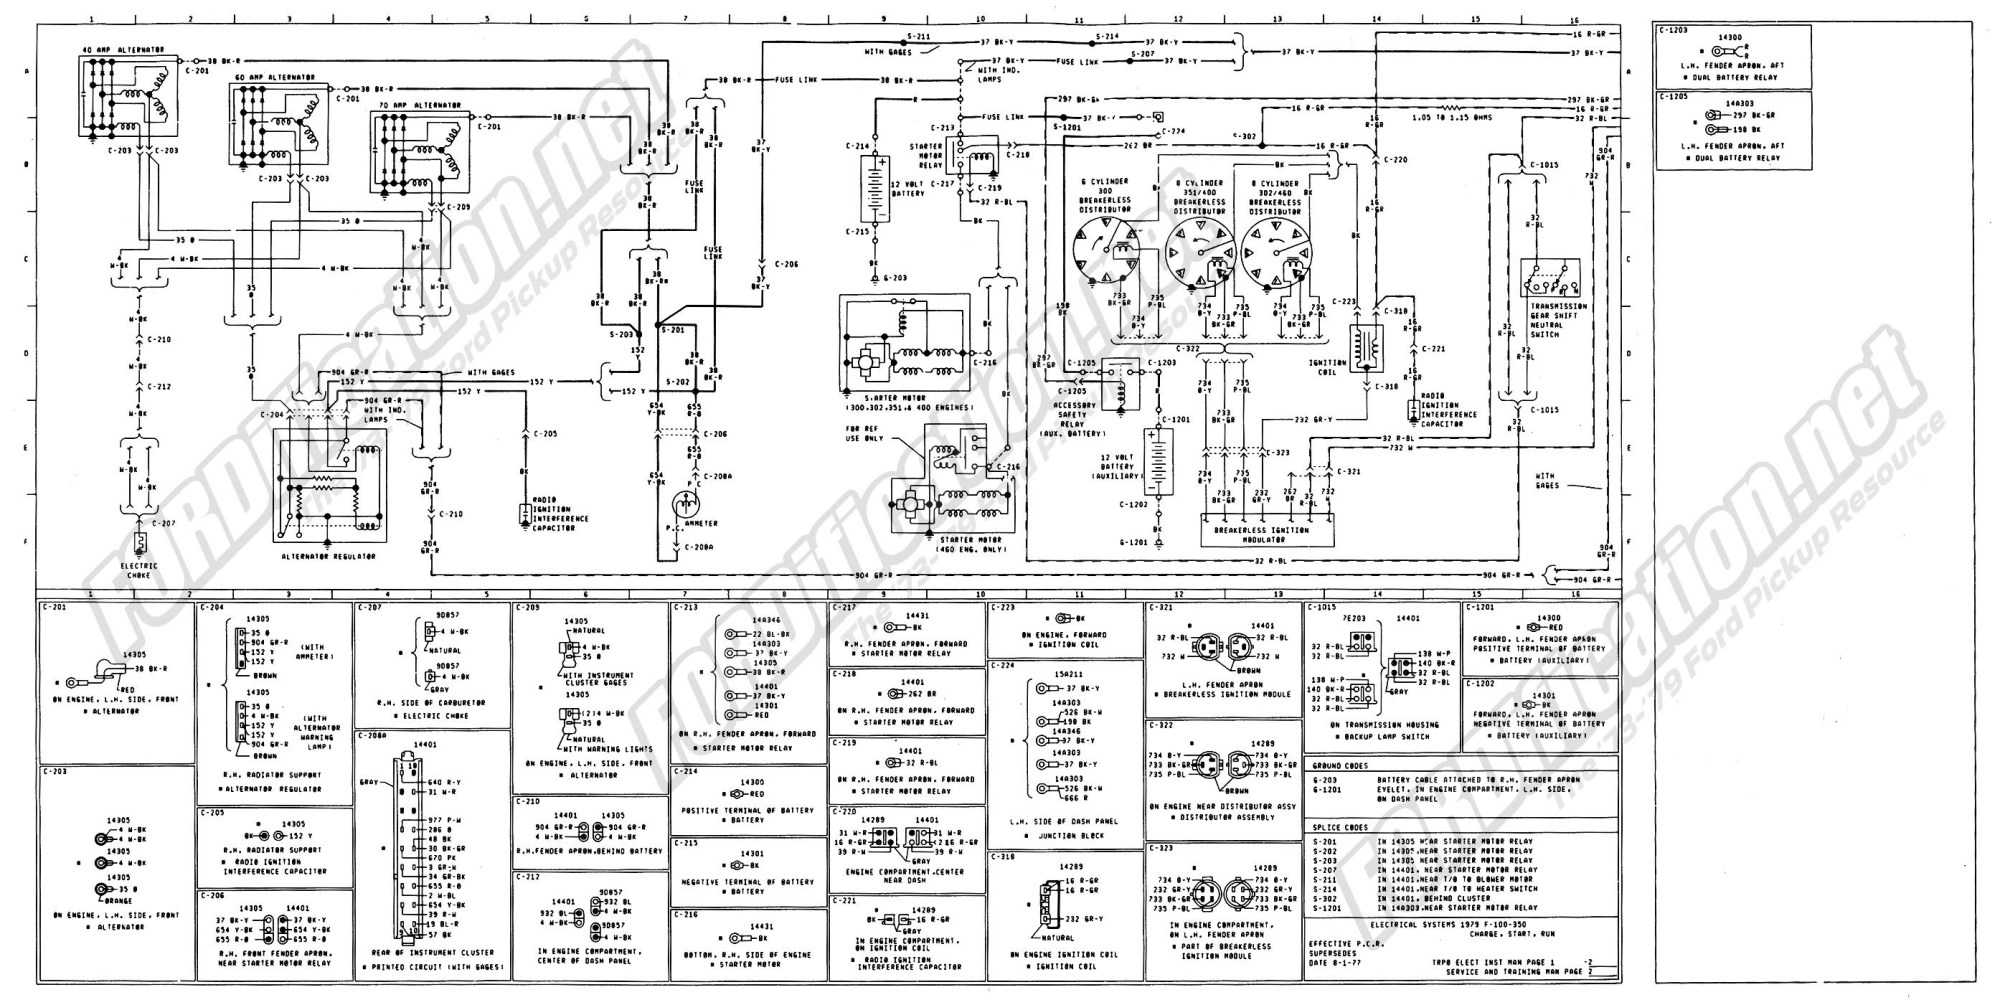 hight resolution of ford 6 0 engine diagram 2 wiring schematic for a c heat a 1984 f250 diesel ford